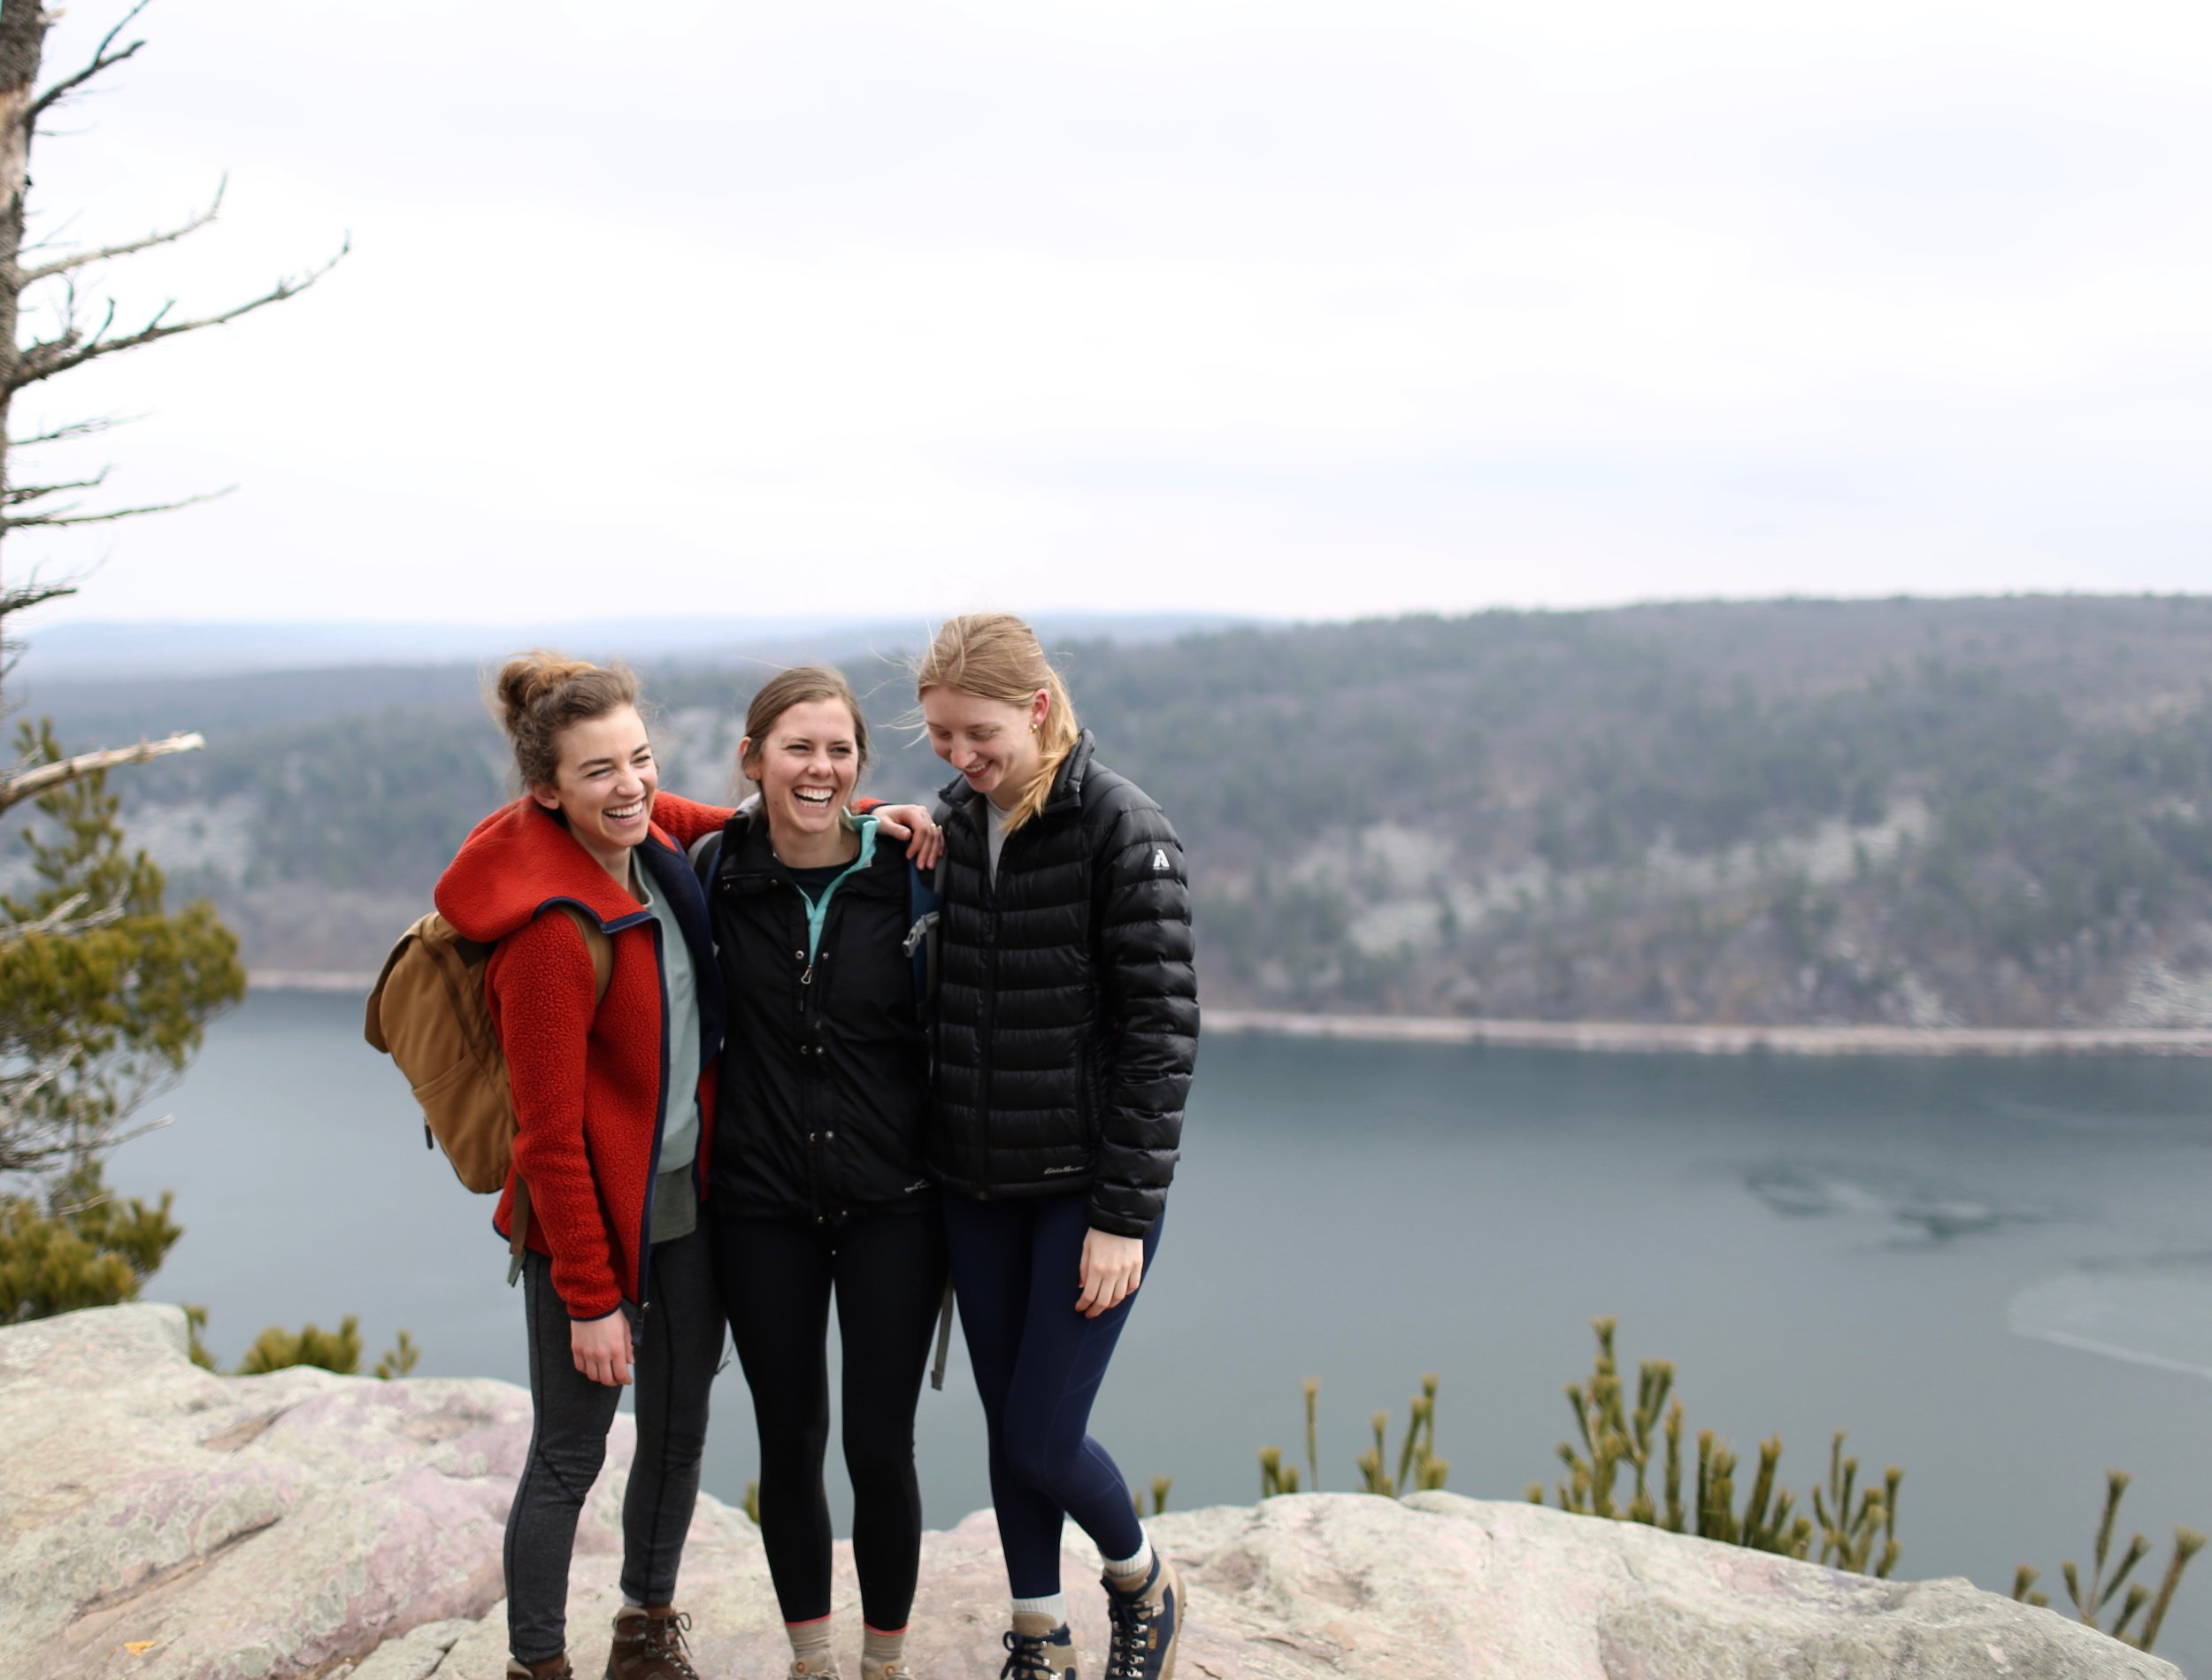 Me and some of my dear girlfriends at Devil's Lake this past weekend enjoying a hike and spring's final awakening.